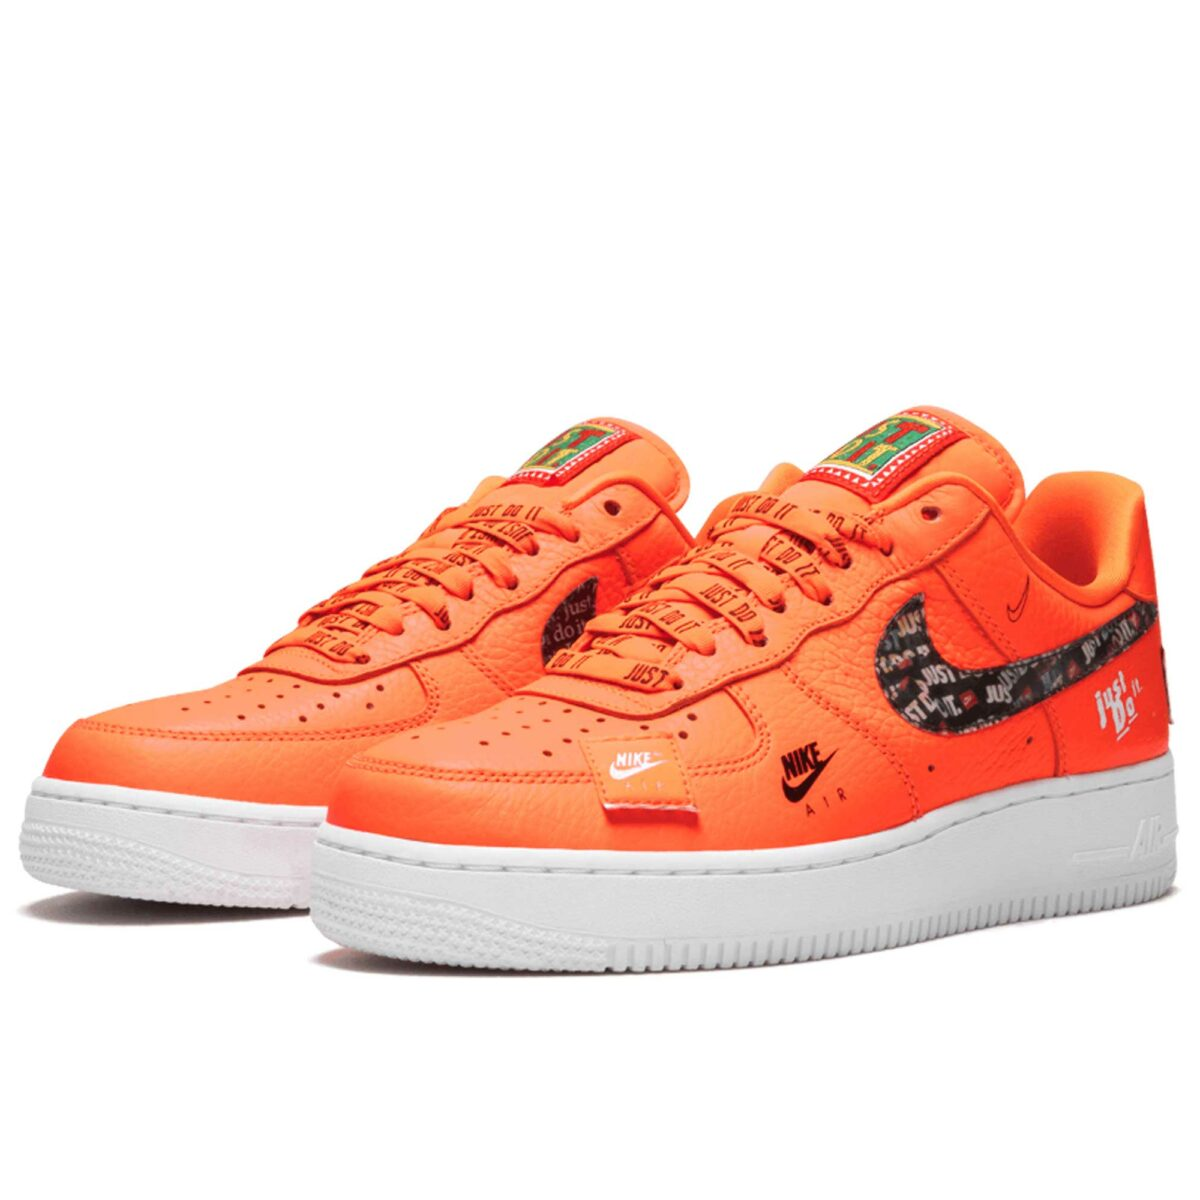 nike air force 1 07 orange AR7719_800 купить